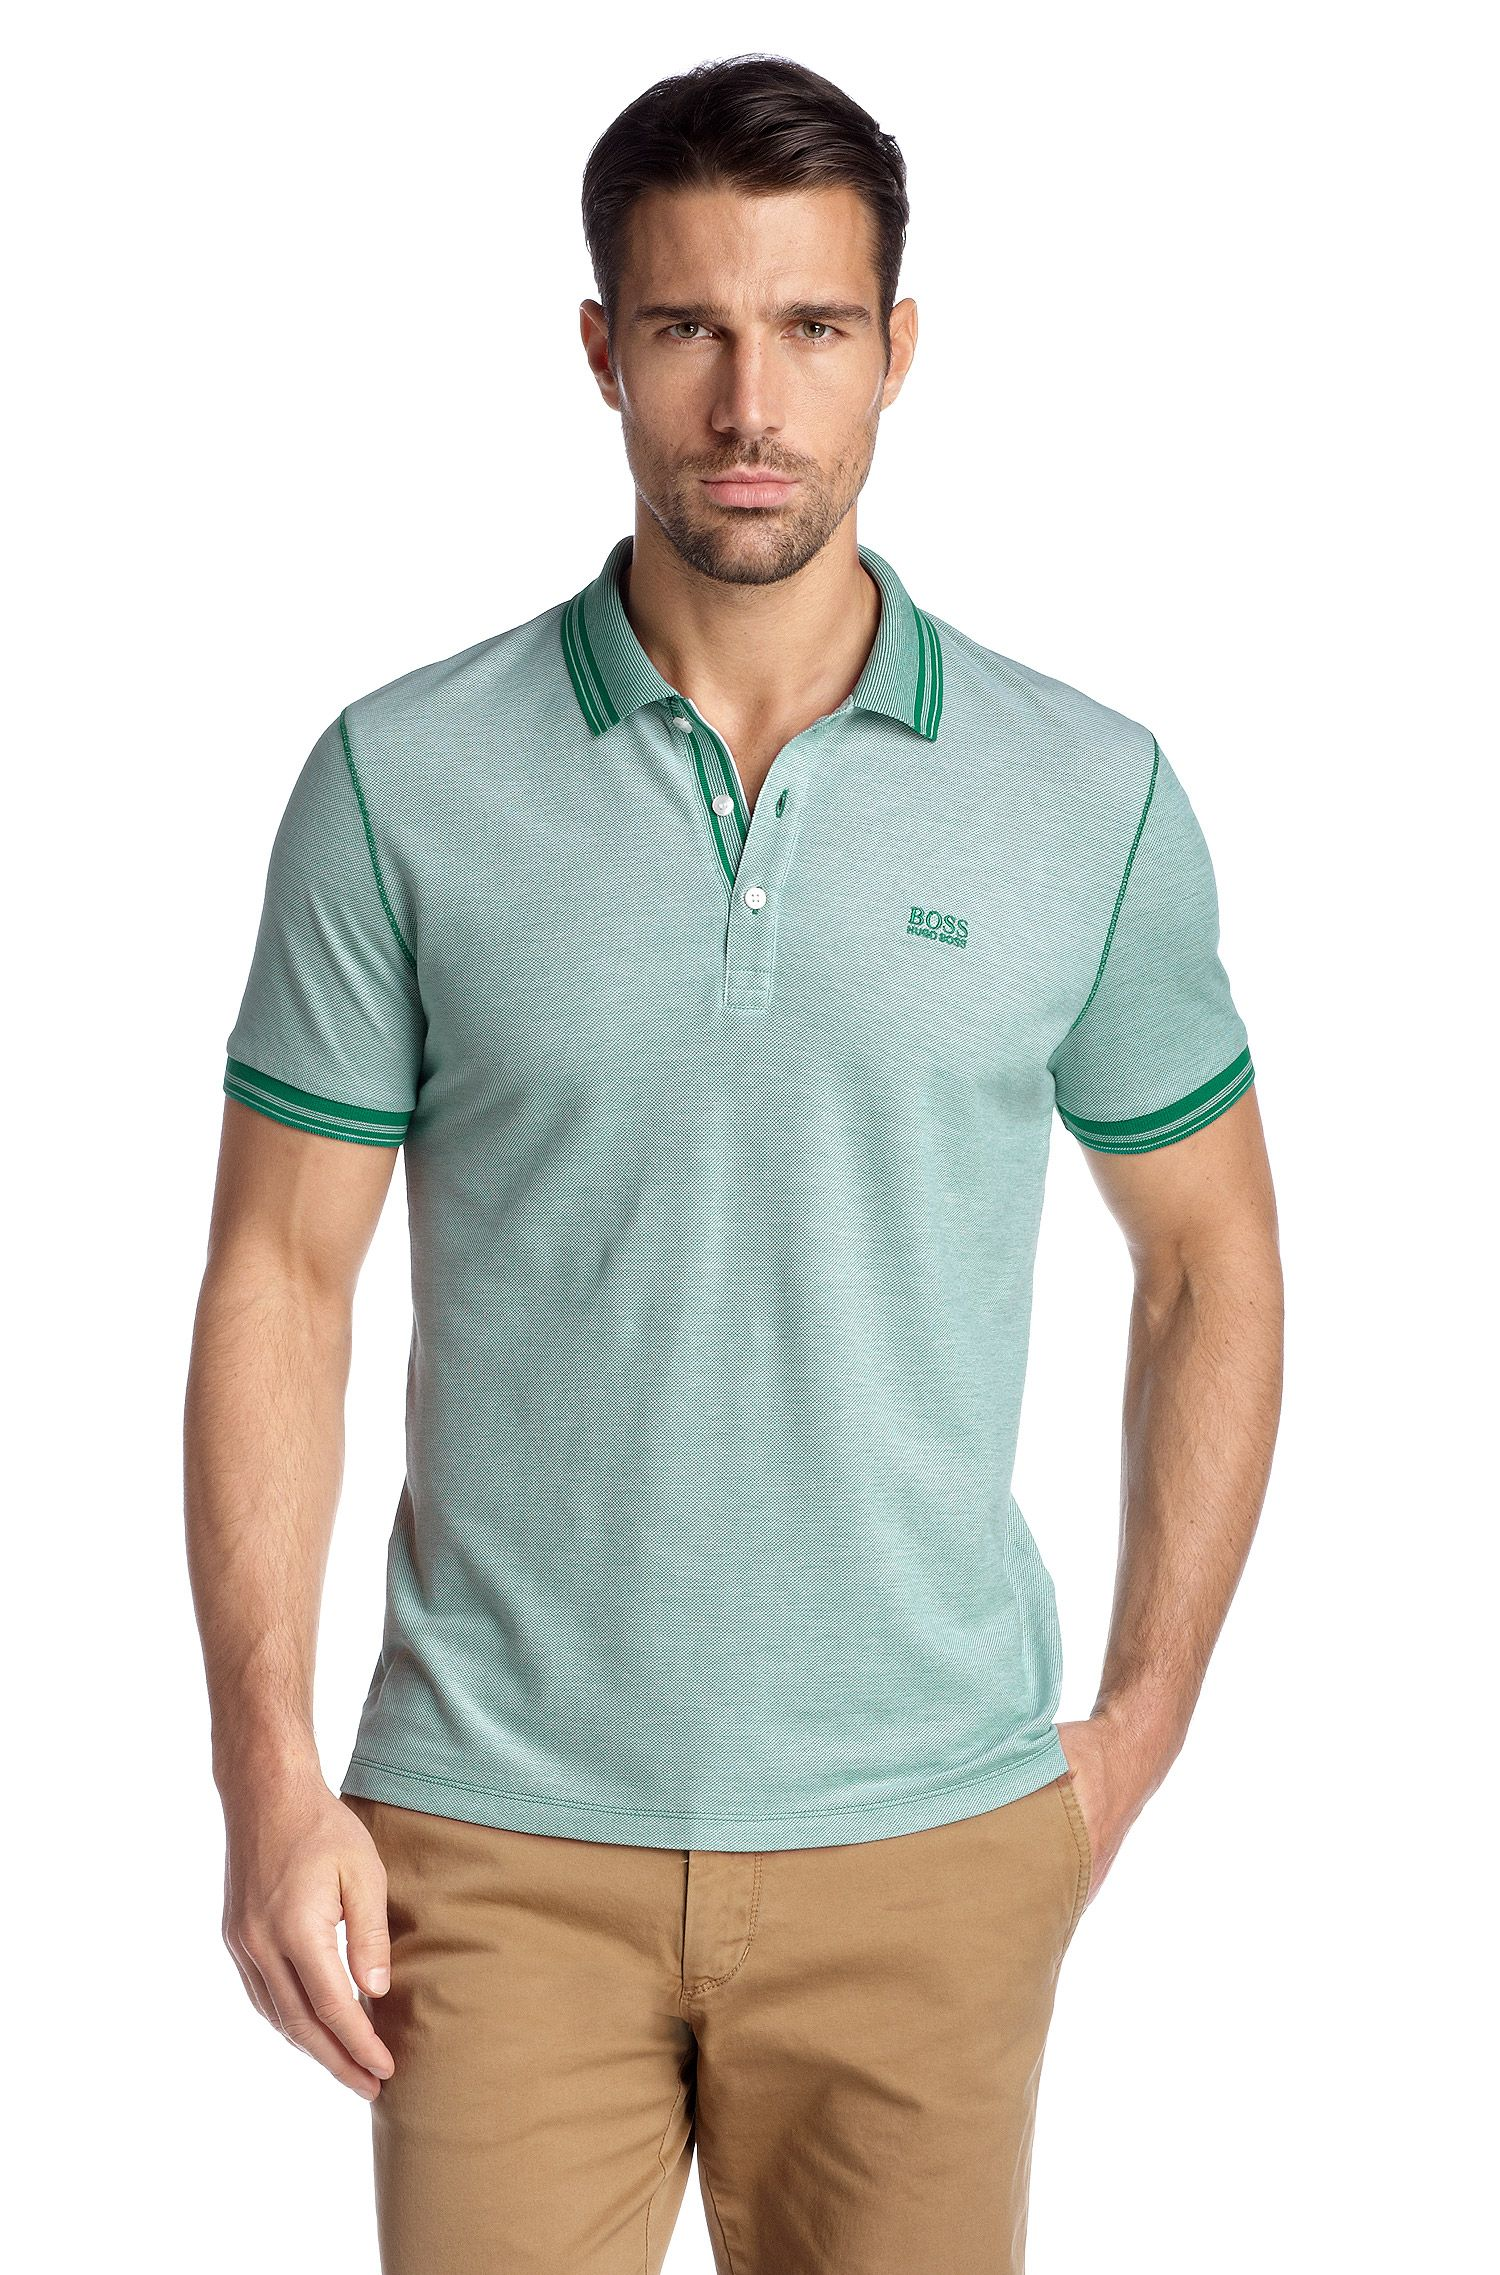 Polo Regular Fit, Bugnara 05 Modern Essential